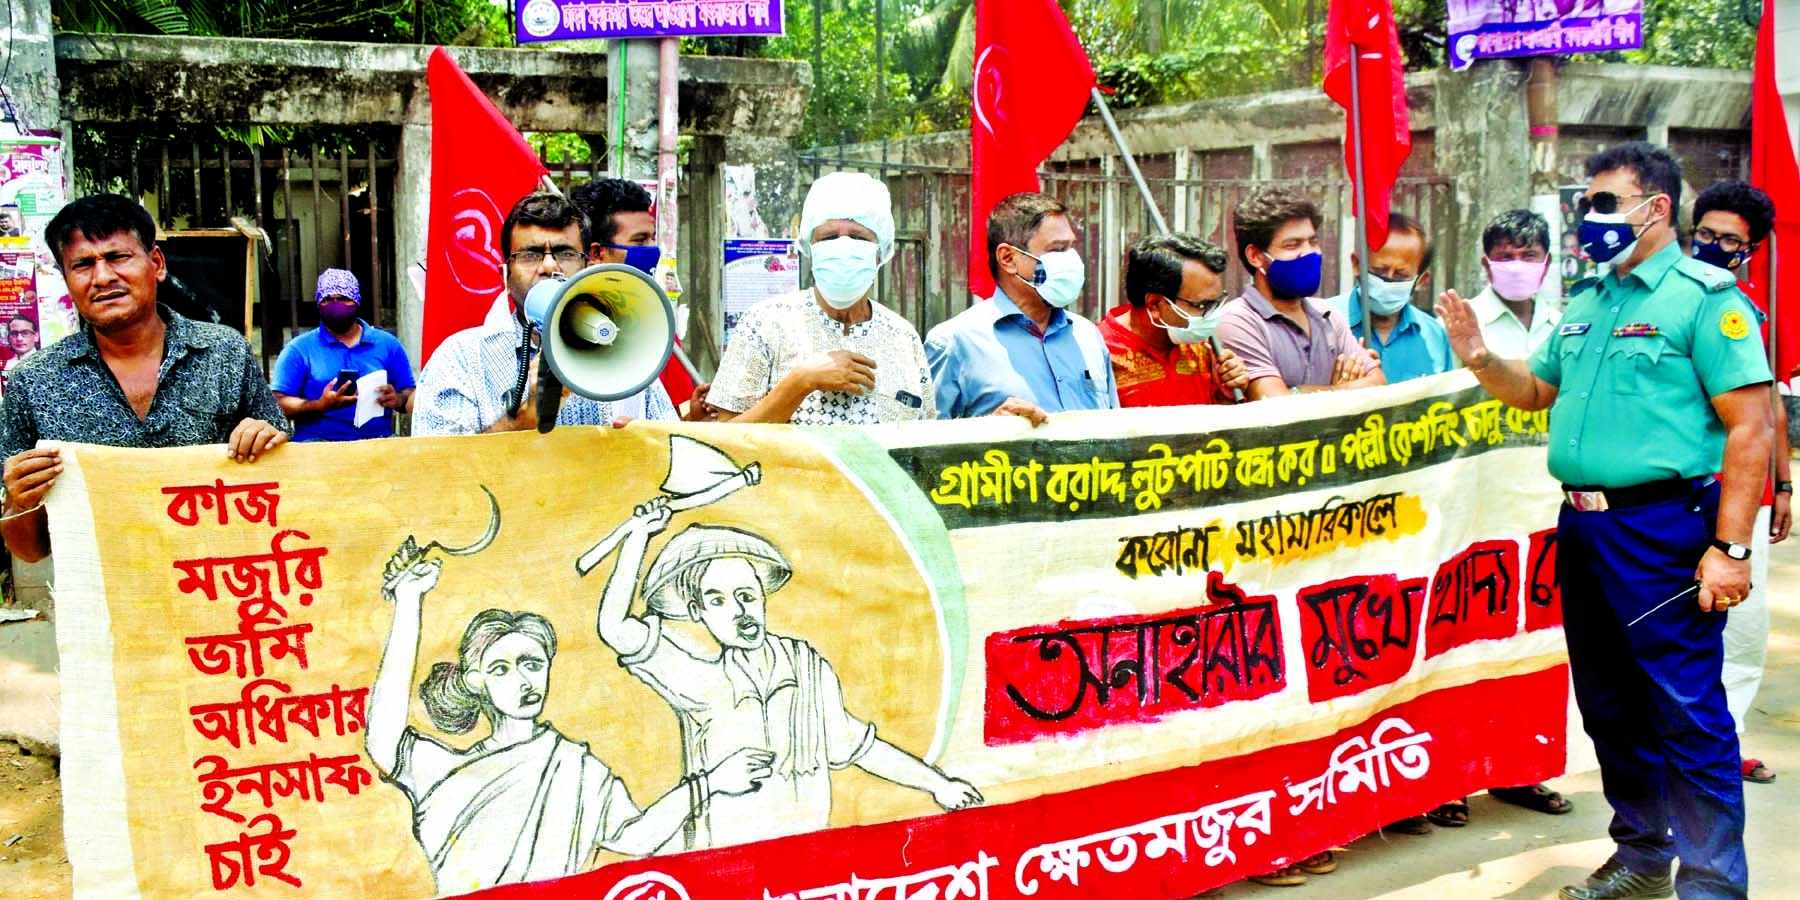 'Bangladesh Khetmajur Samity' forms a human chain in front of the Jatiya Press Club on Wednesday with a call to introduce village rationing system.